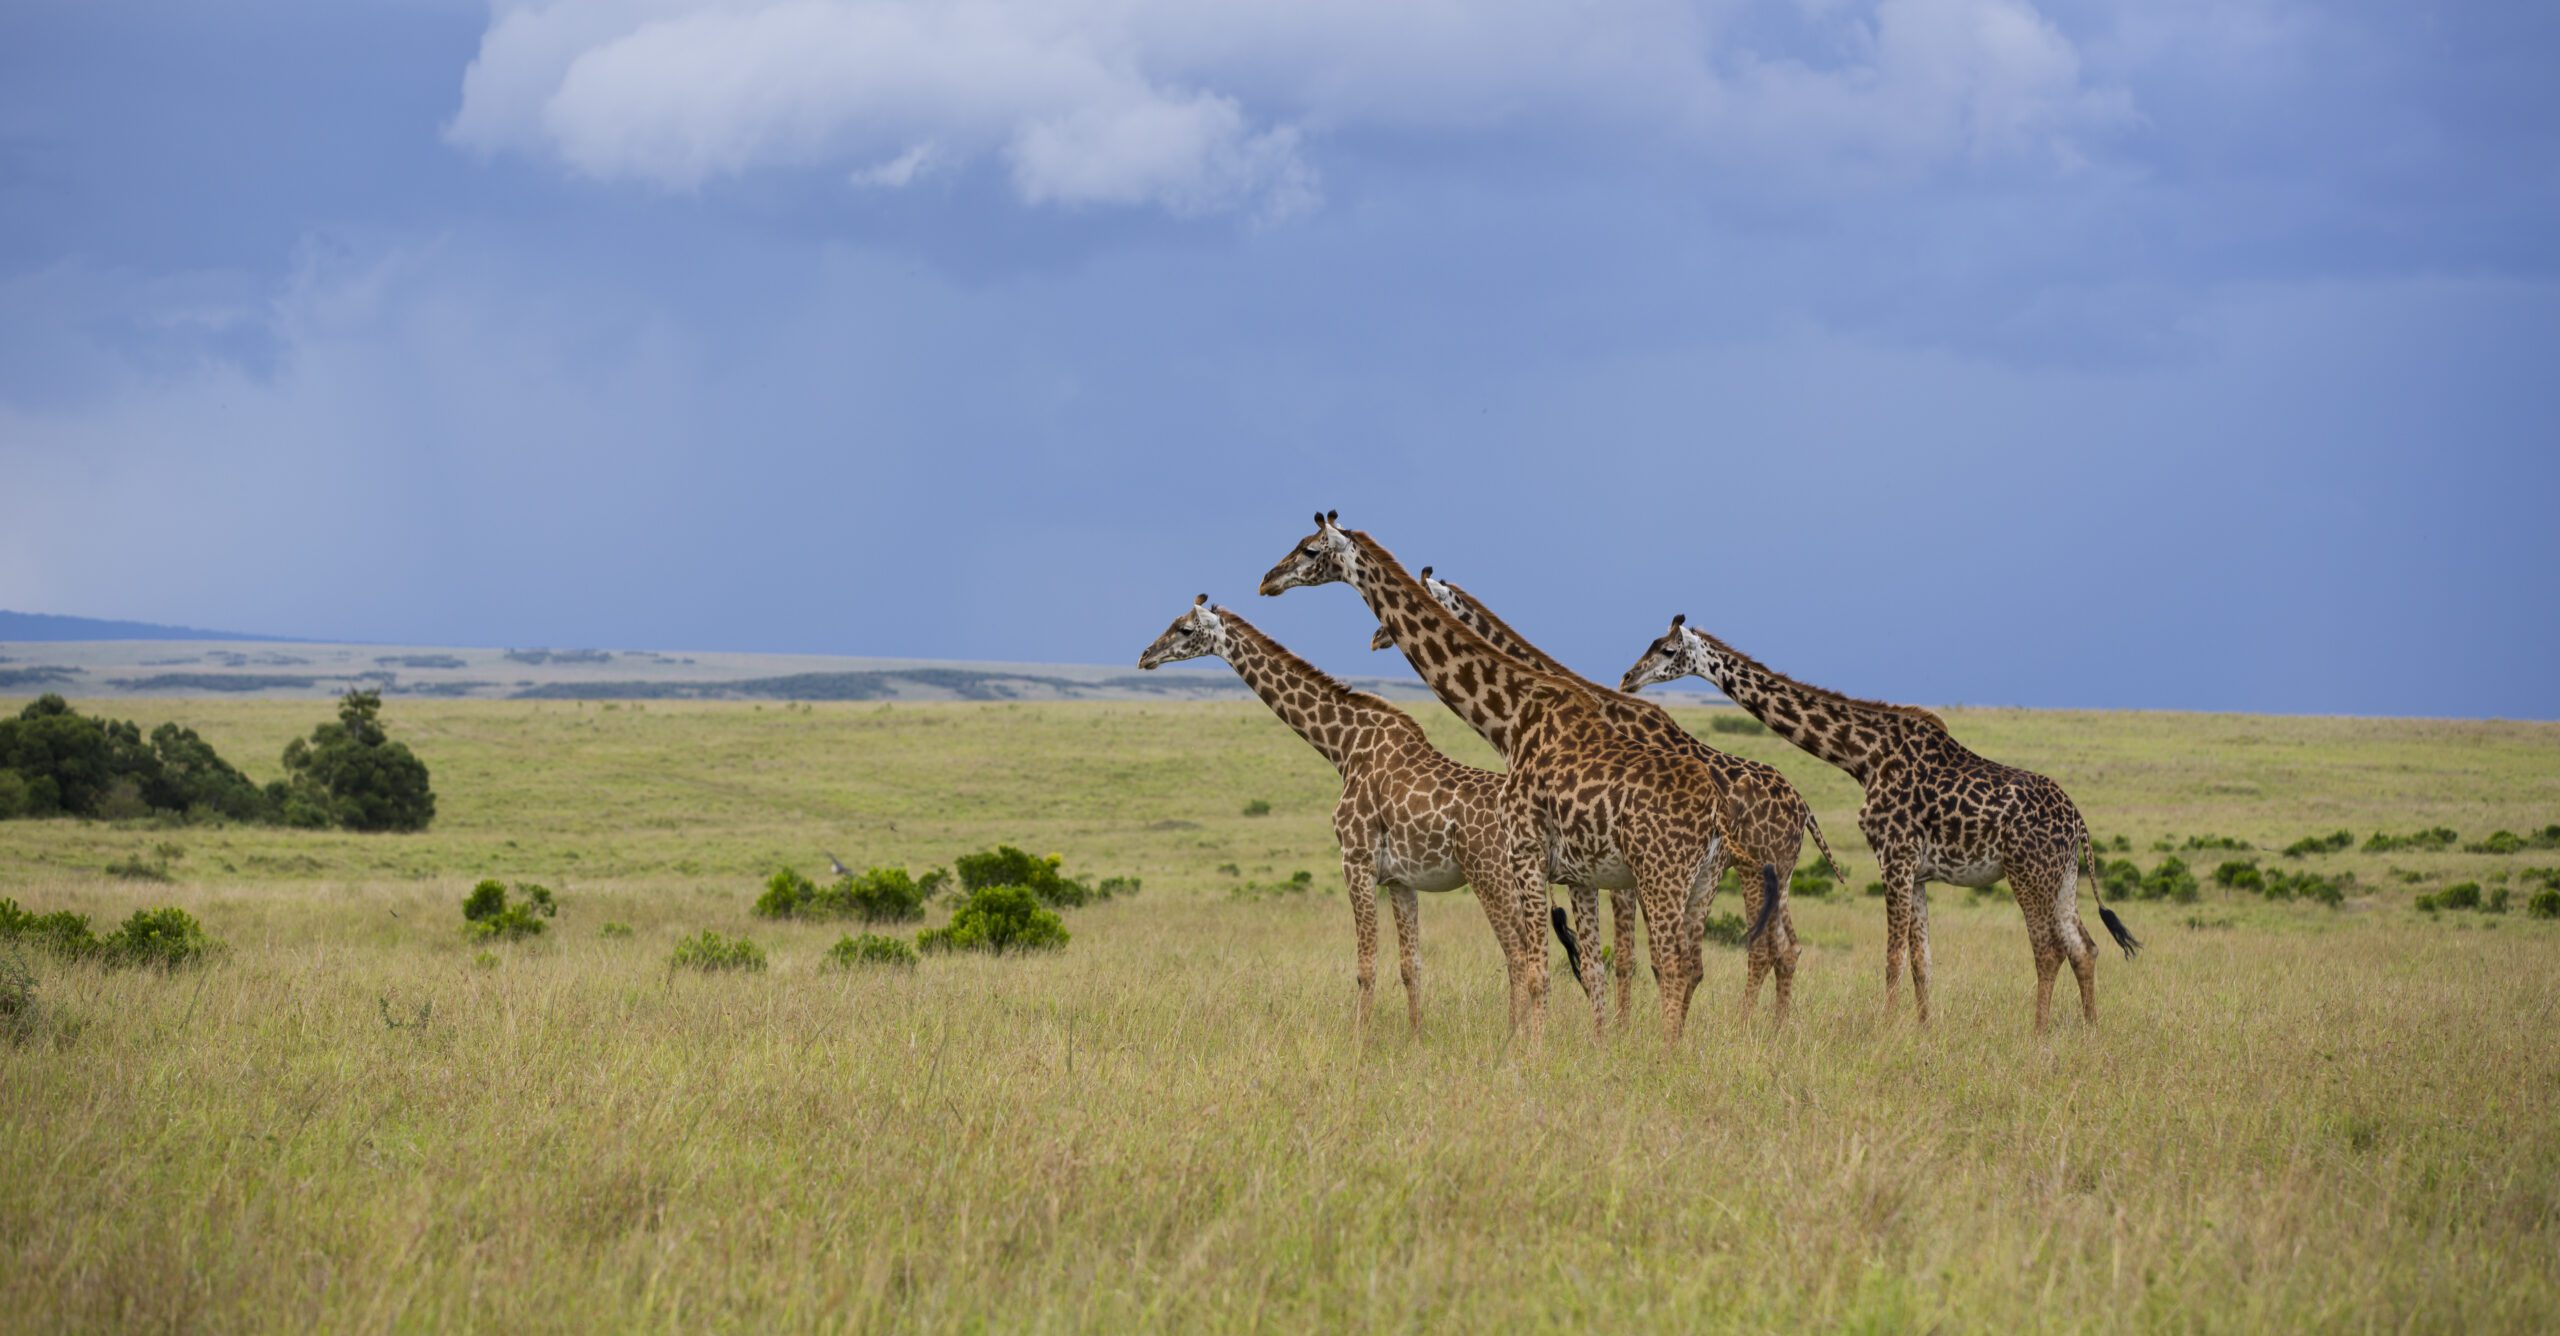 group of giraffe out on the open plains of the Maasai Mara on this Southern Africa safari